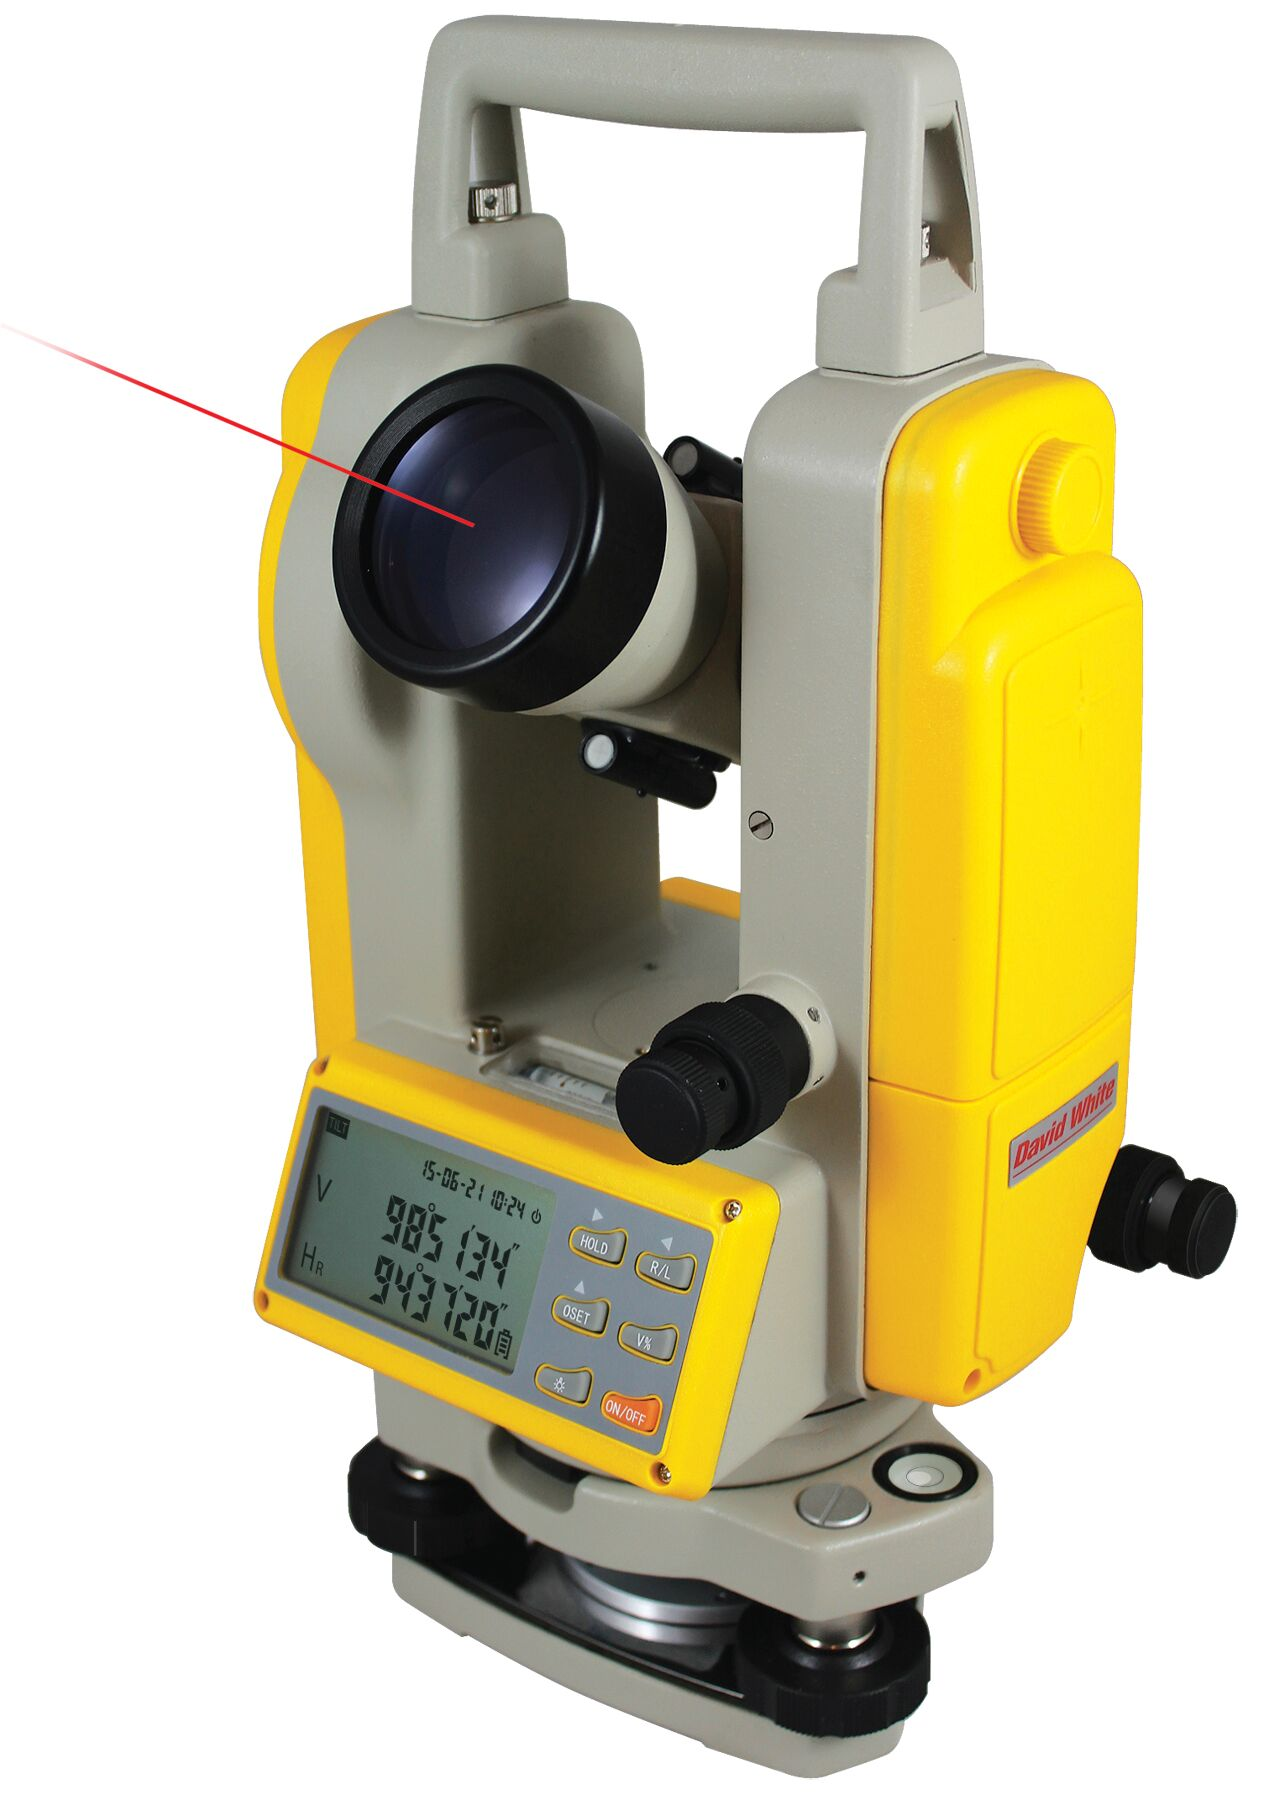 DT8-05LS 5-Sec Digital Theodolite Laser Sight Optical Plummet